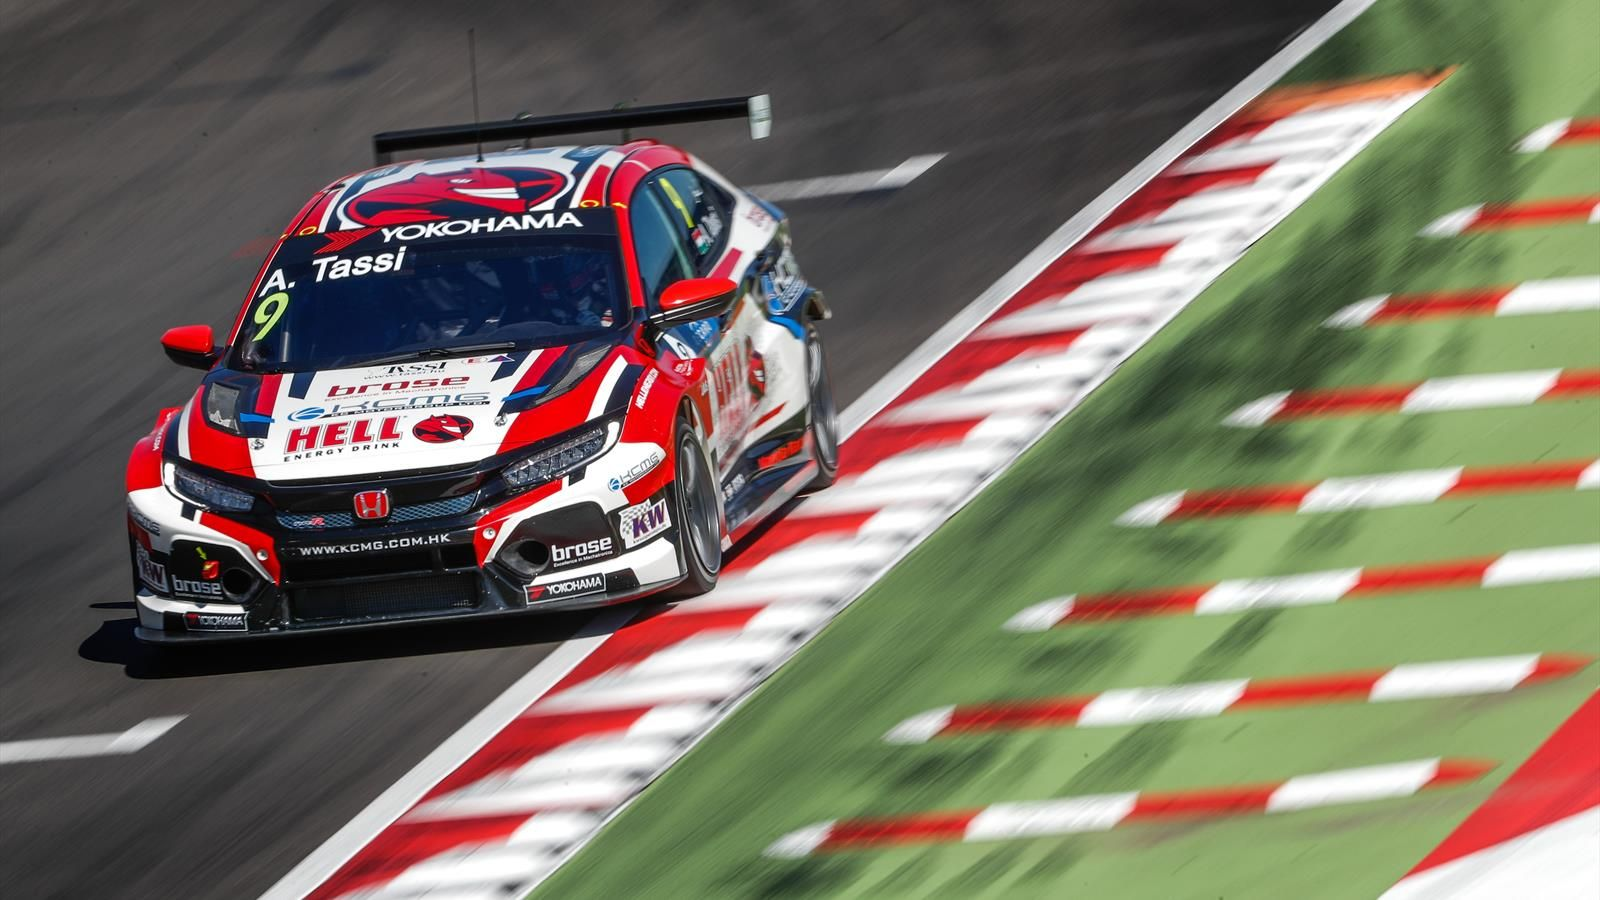 Wtcr 2019 Honda Civic Type-R TCR